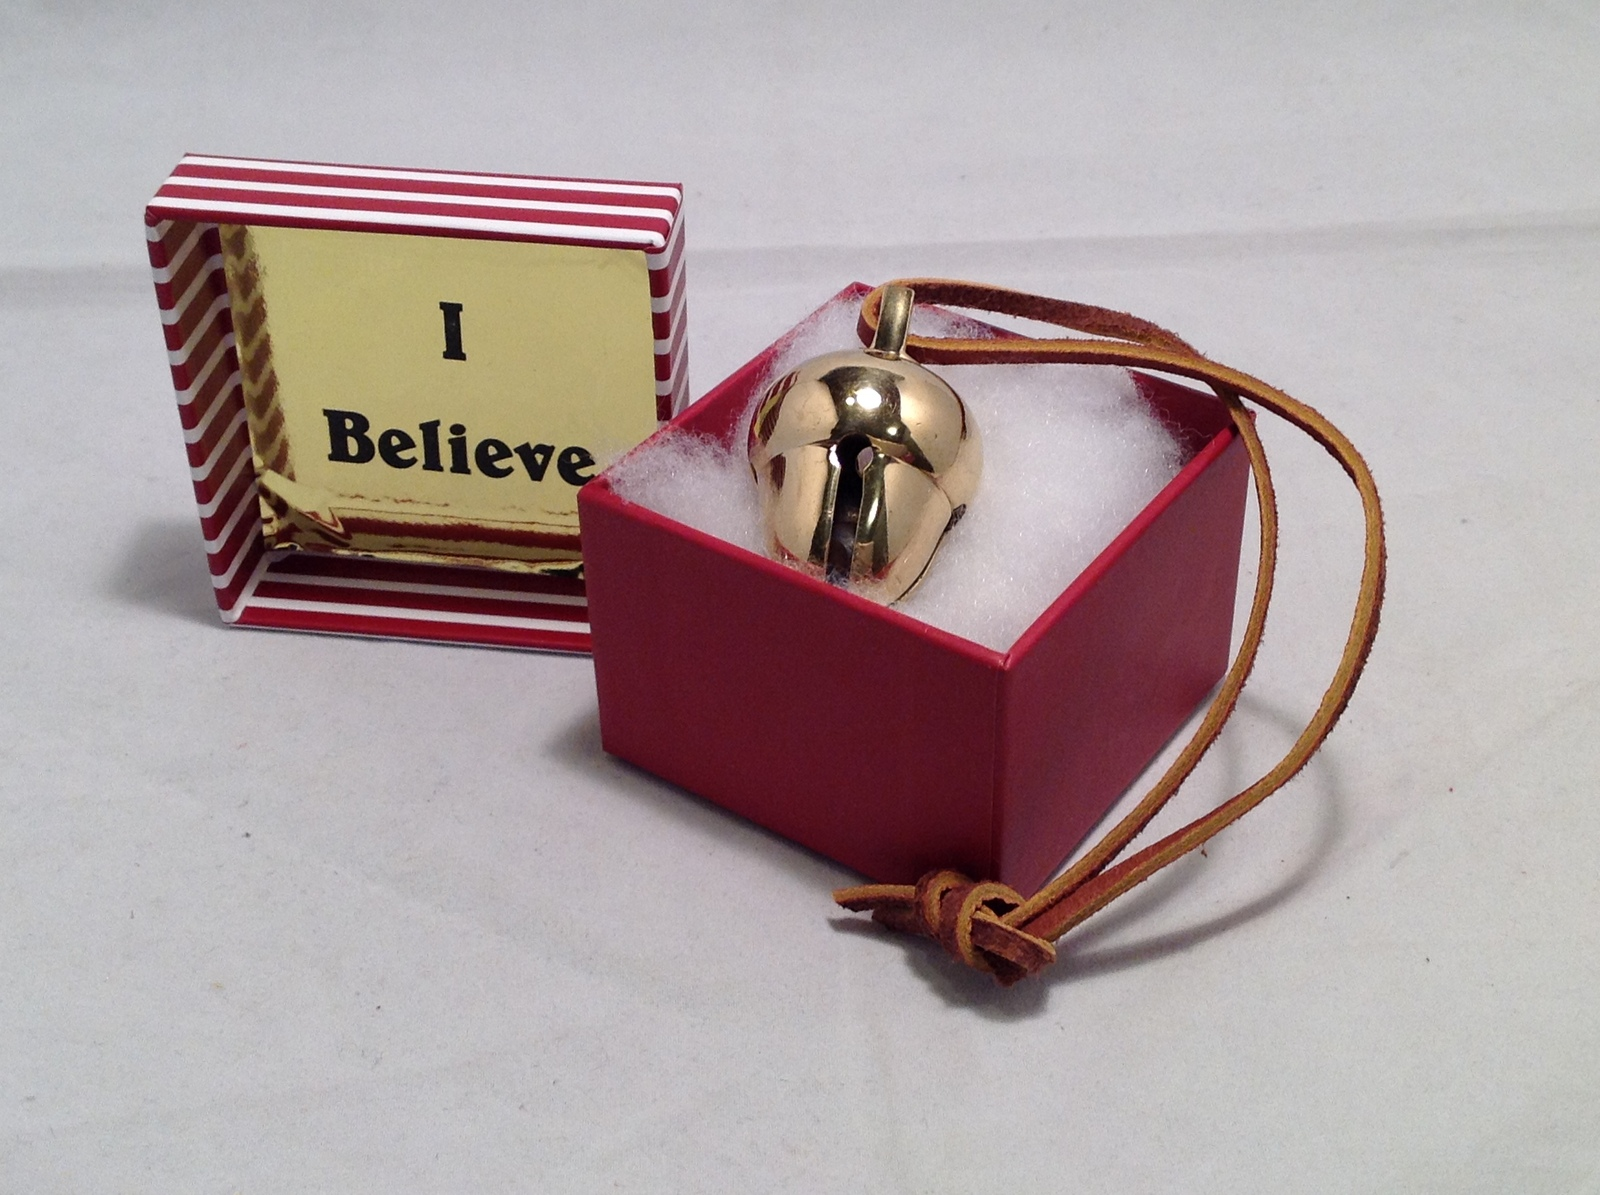 Primary image for I Believe Polar Express Brass 2 tone Acorn Bell Exclusively From Elf Works Lane